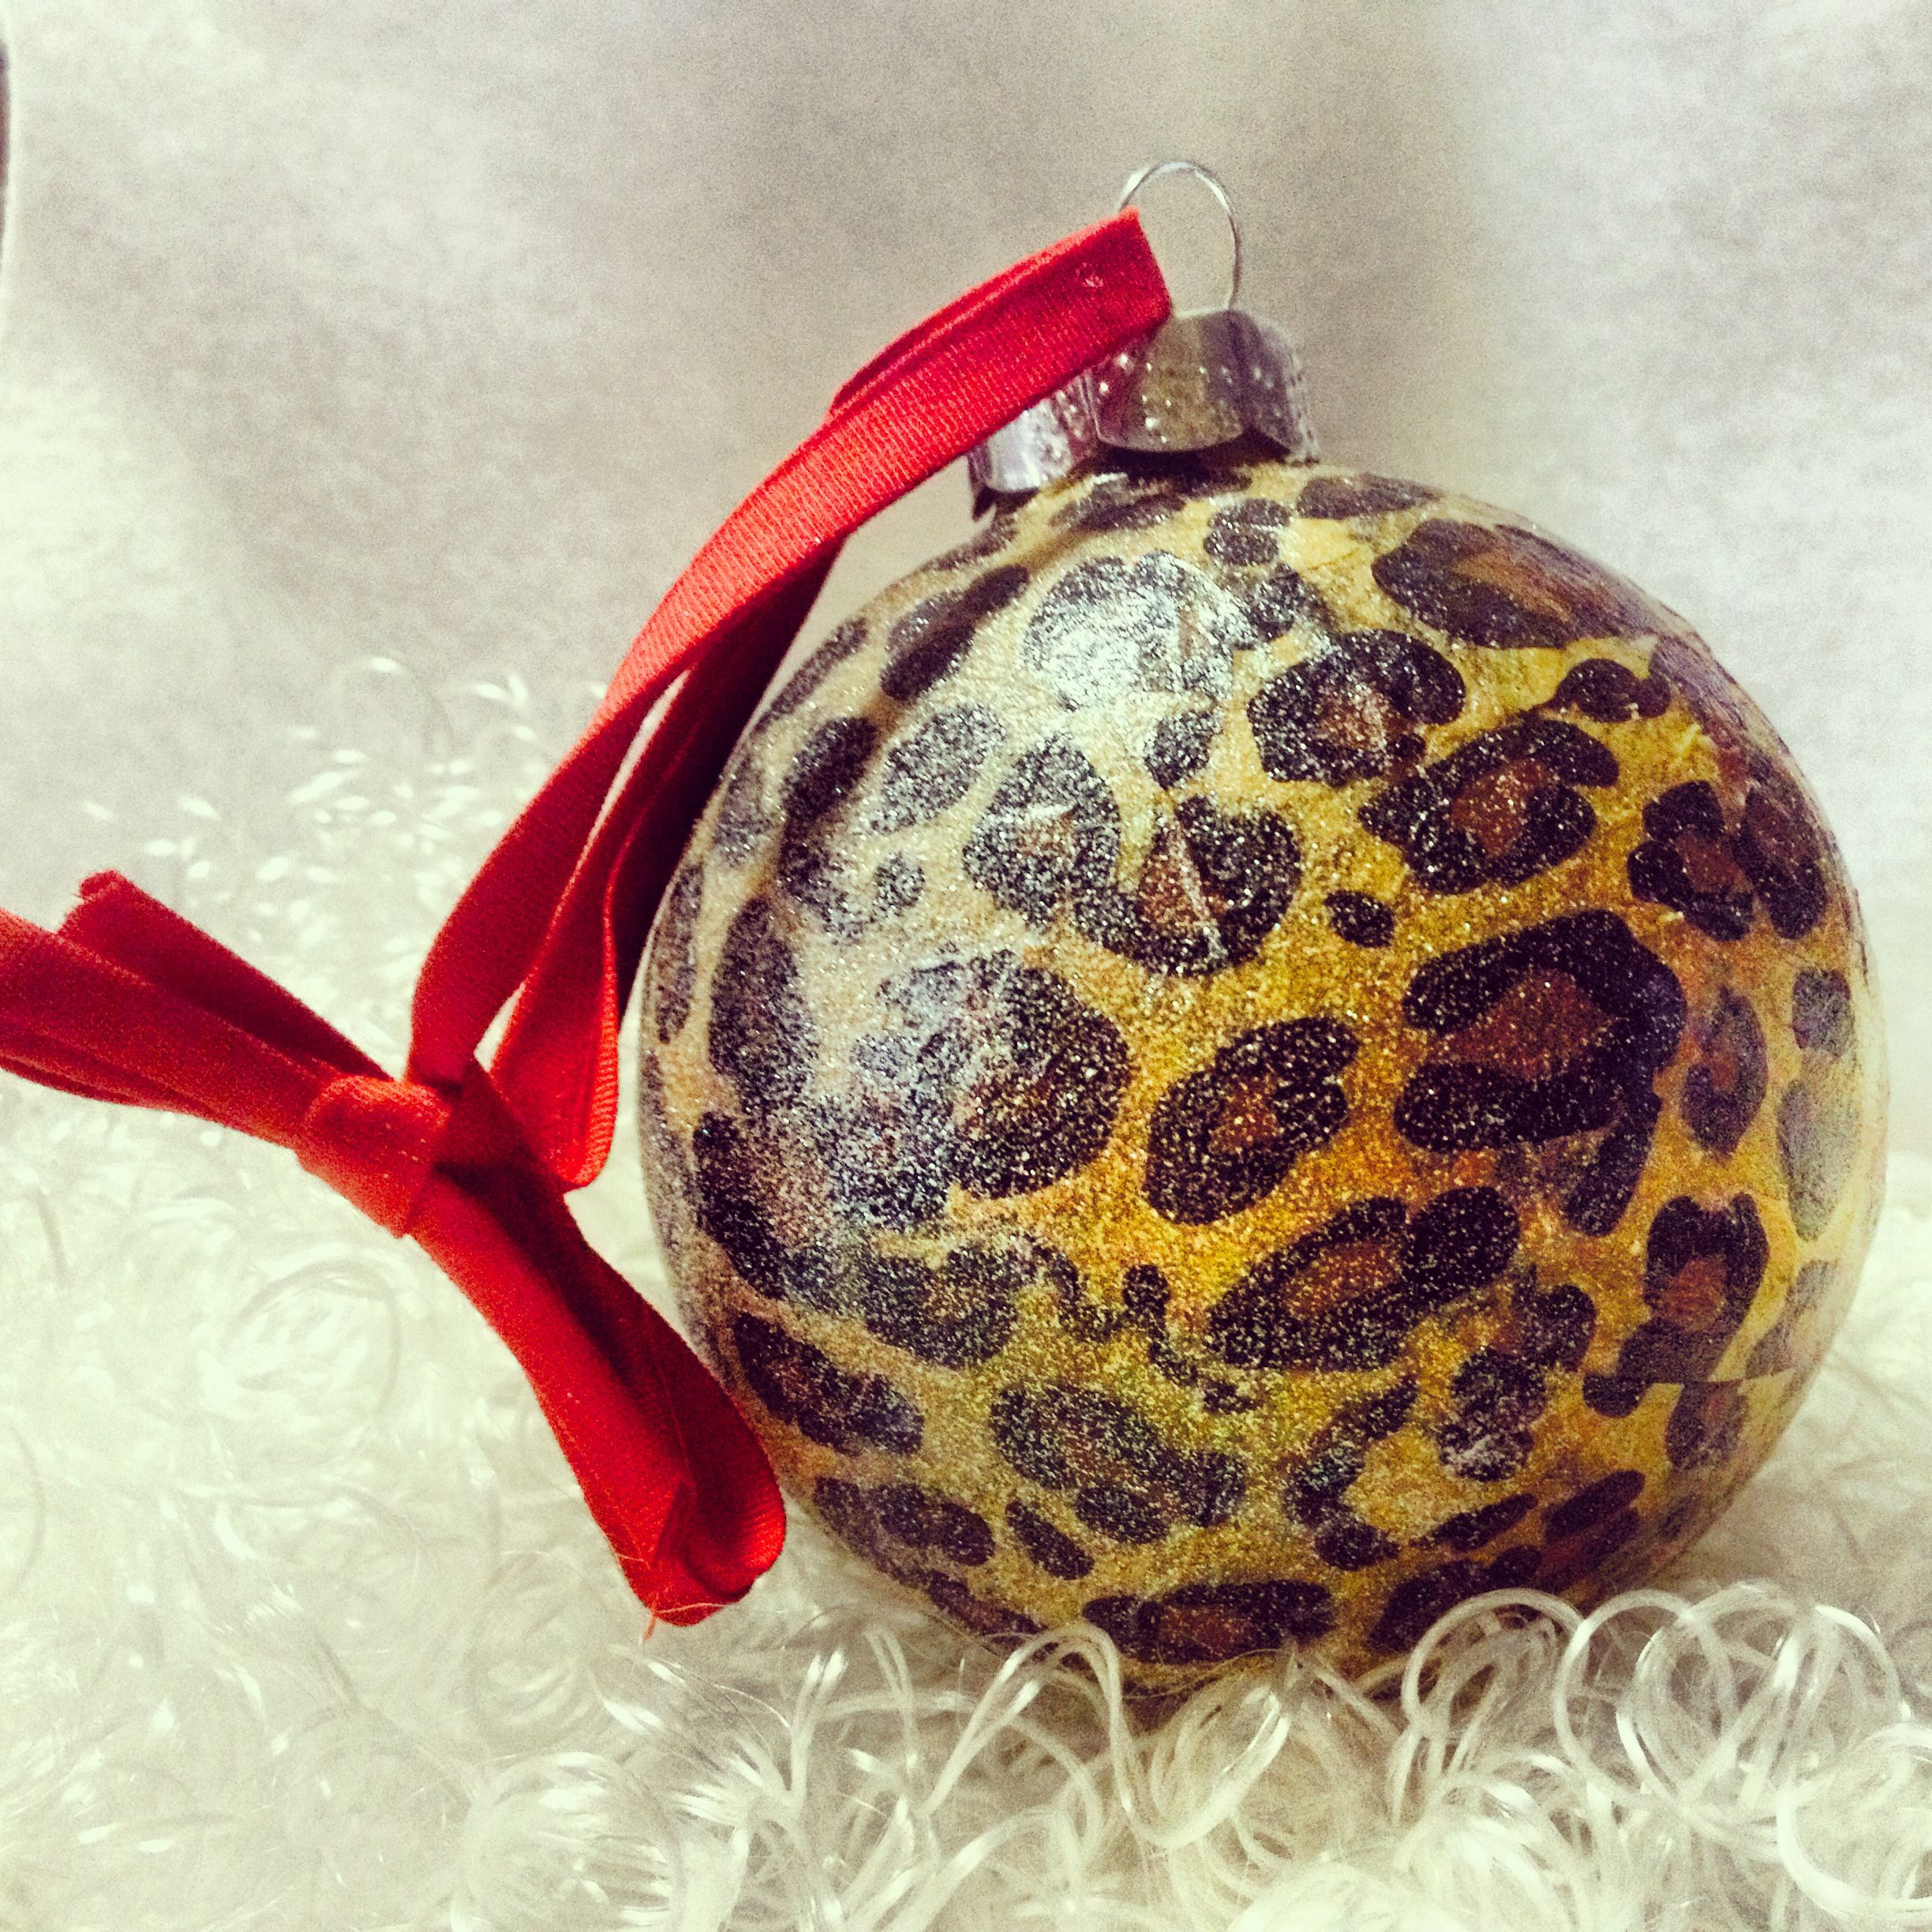 Diy Leopard Print Christmas Ornament Modge Podge Leopard Tissue Paper And Spray Glitter Christmas Crafts Christmas Ornaments Glitter Spray